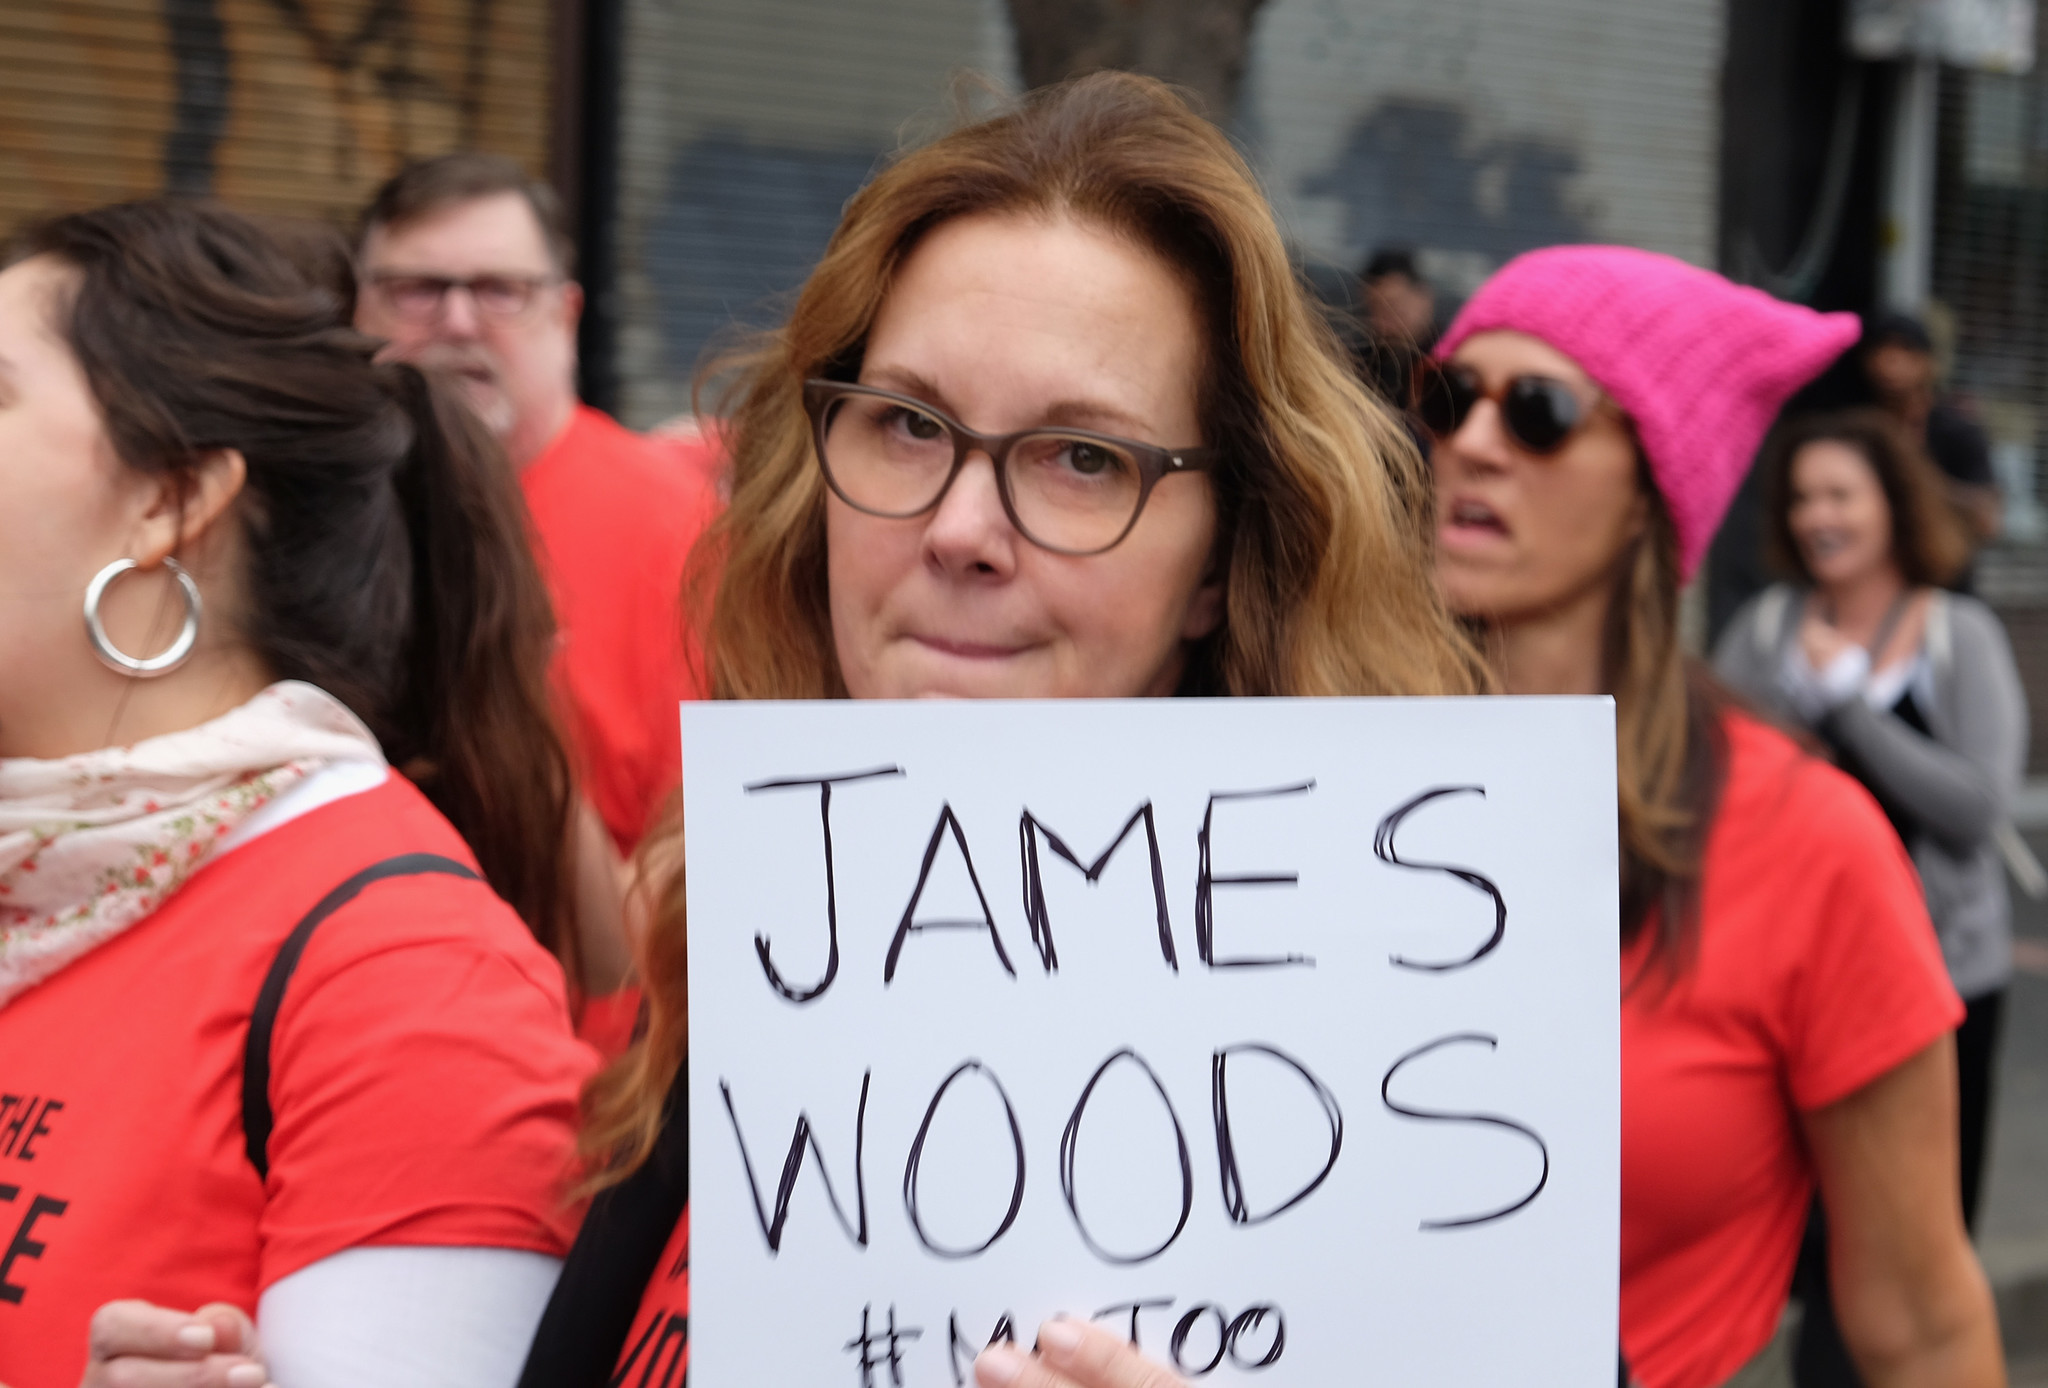 Elizabeth Perkins with sign identifying James Woods